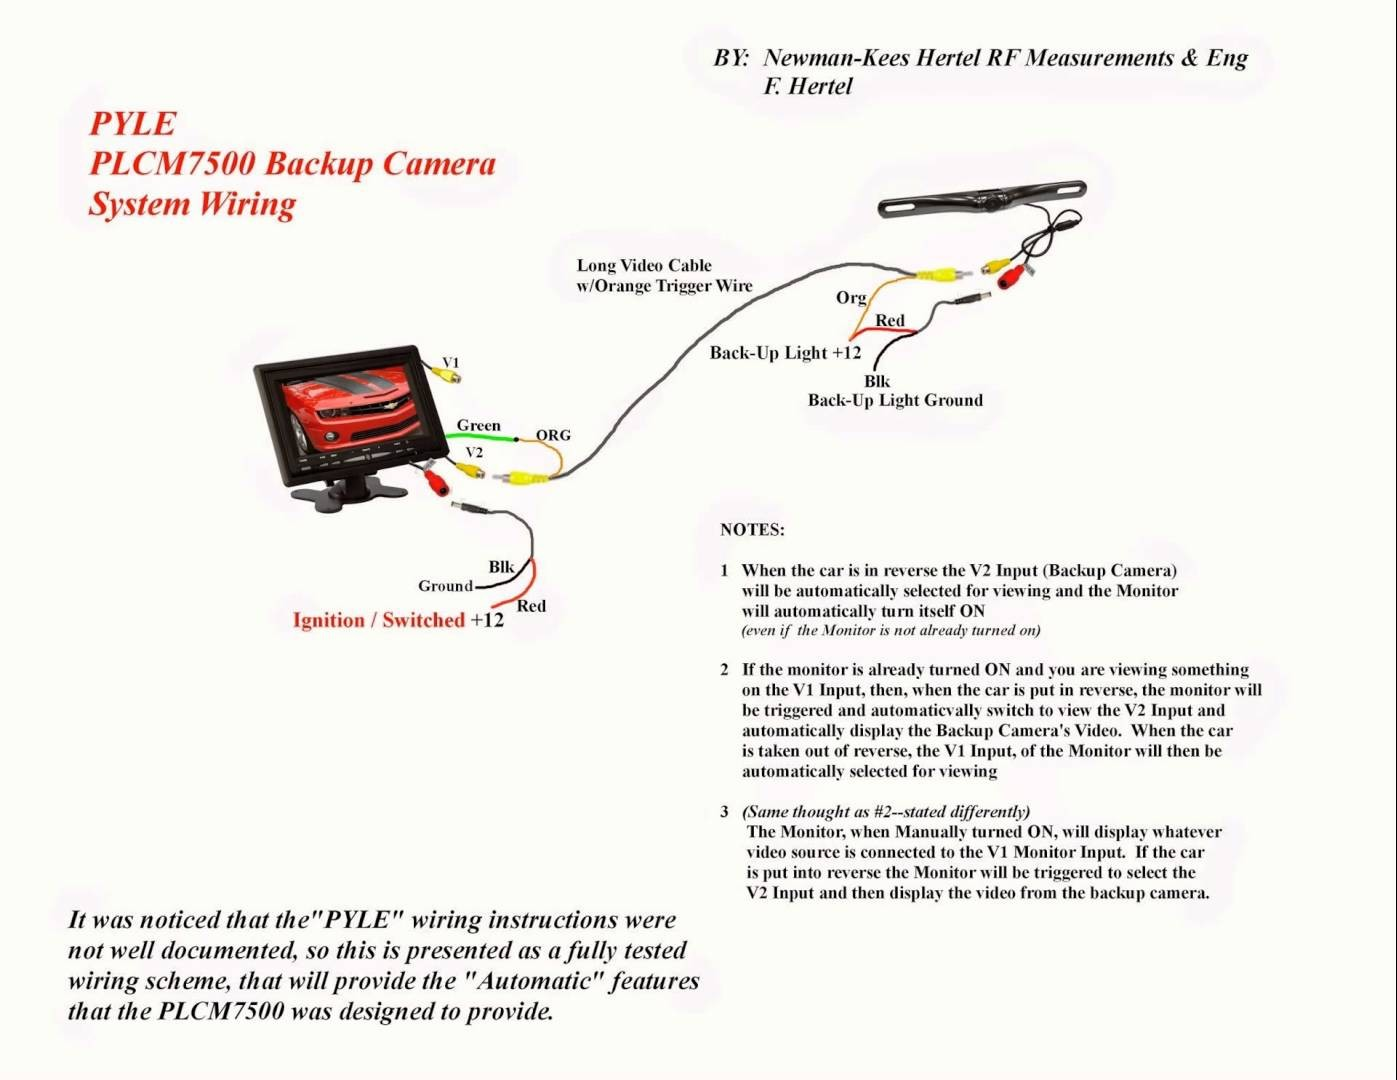 Car Monitor Wiring Diagram Electrical Drawing Auto Video Plcm7500 Image Rh Mainetreasurechest Com Diagrams For Cars 2009 Club